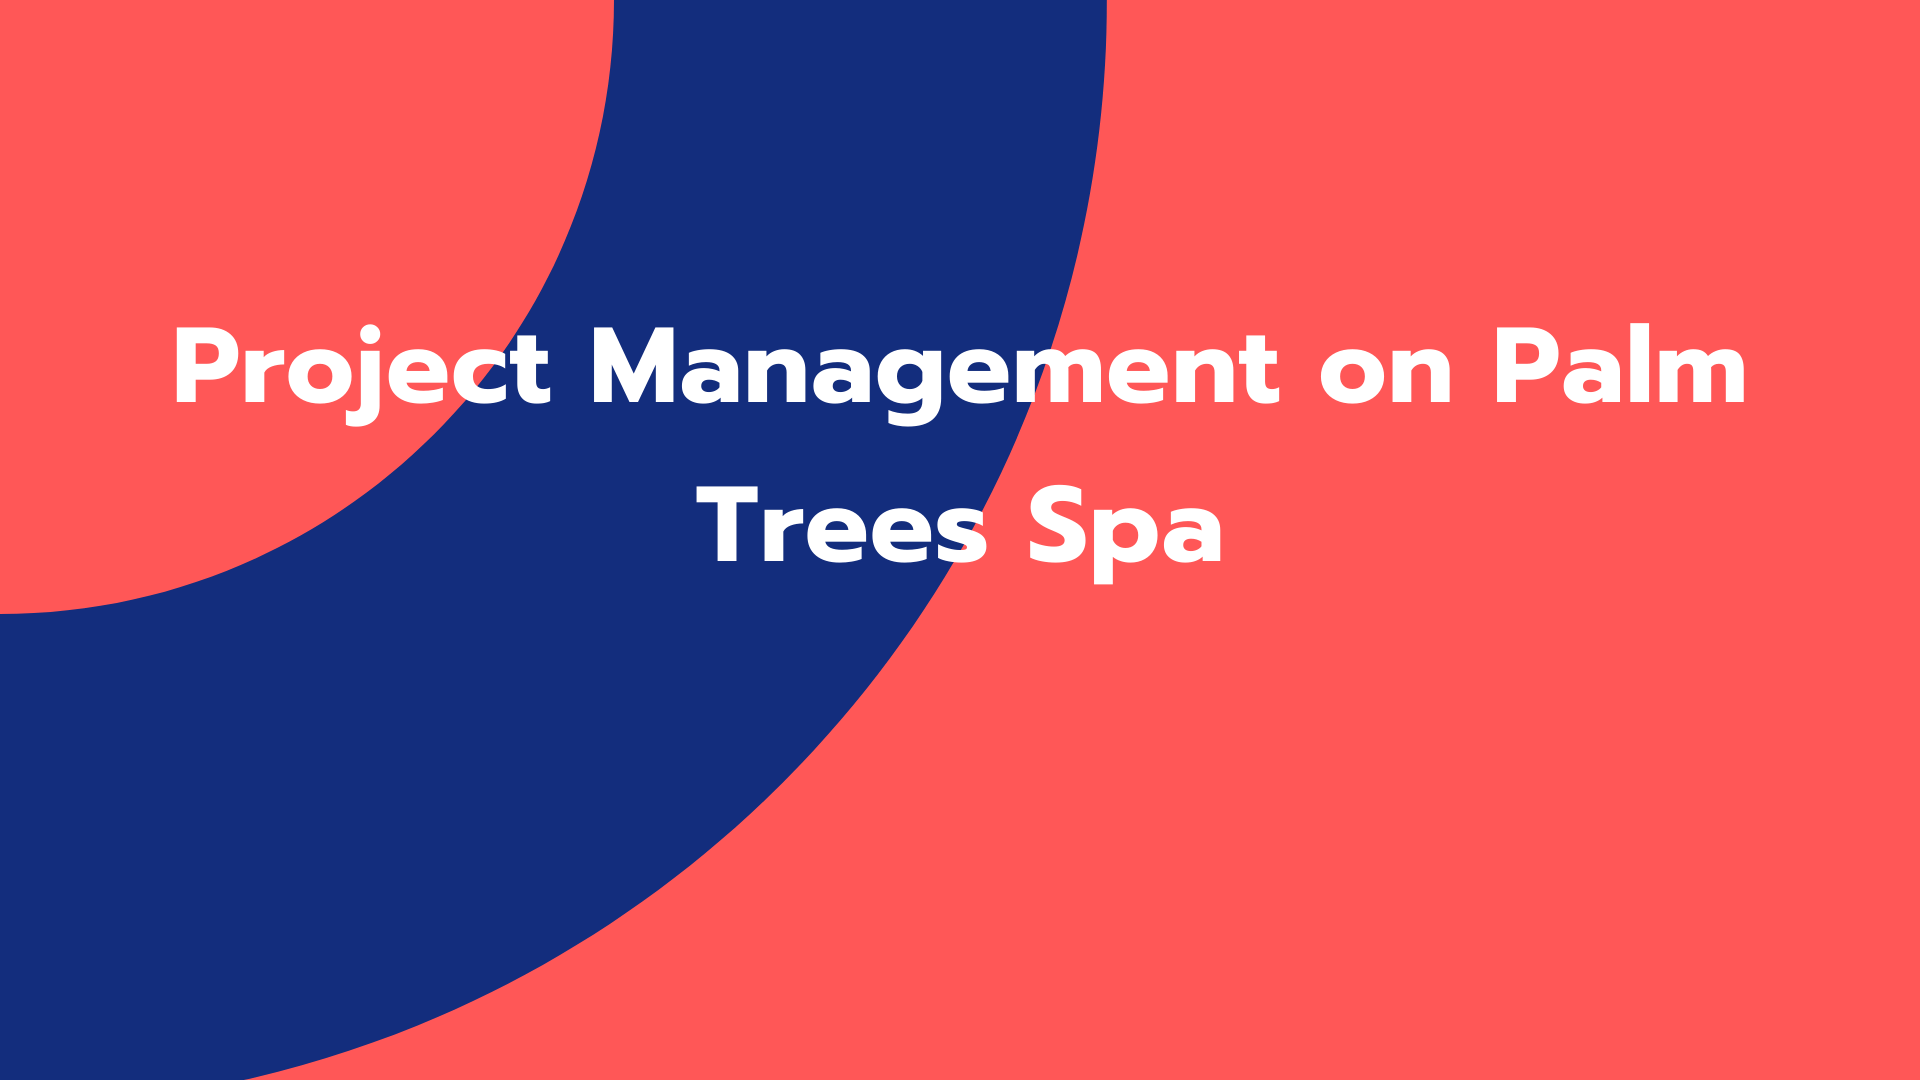 Project Management on Palm Trees Spa